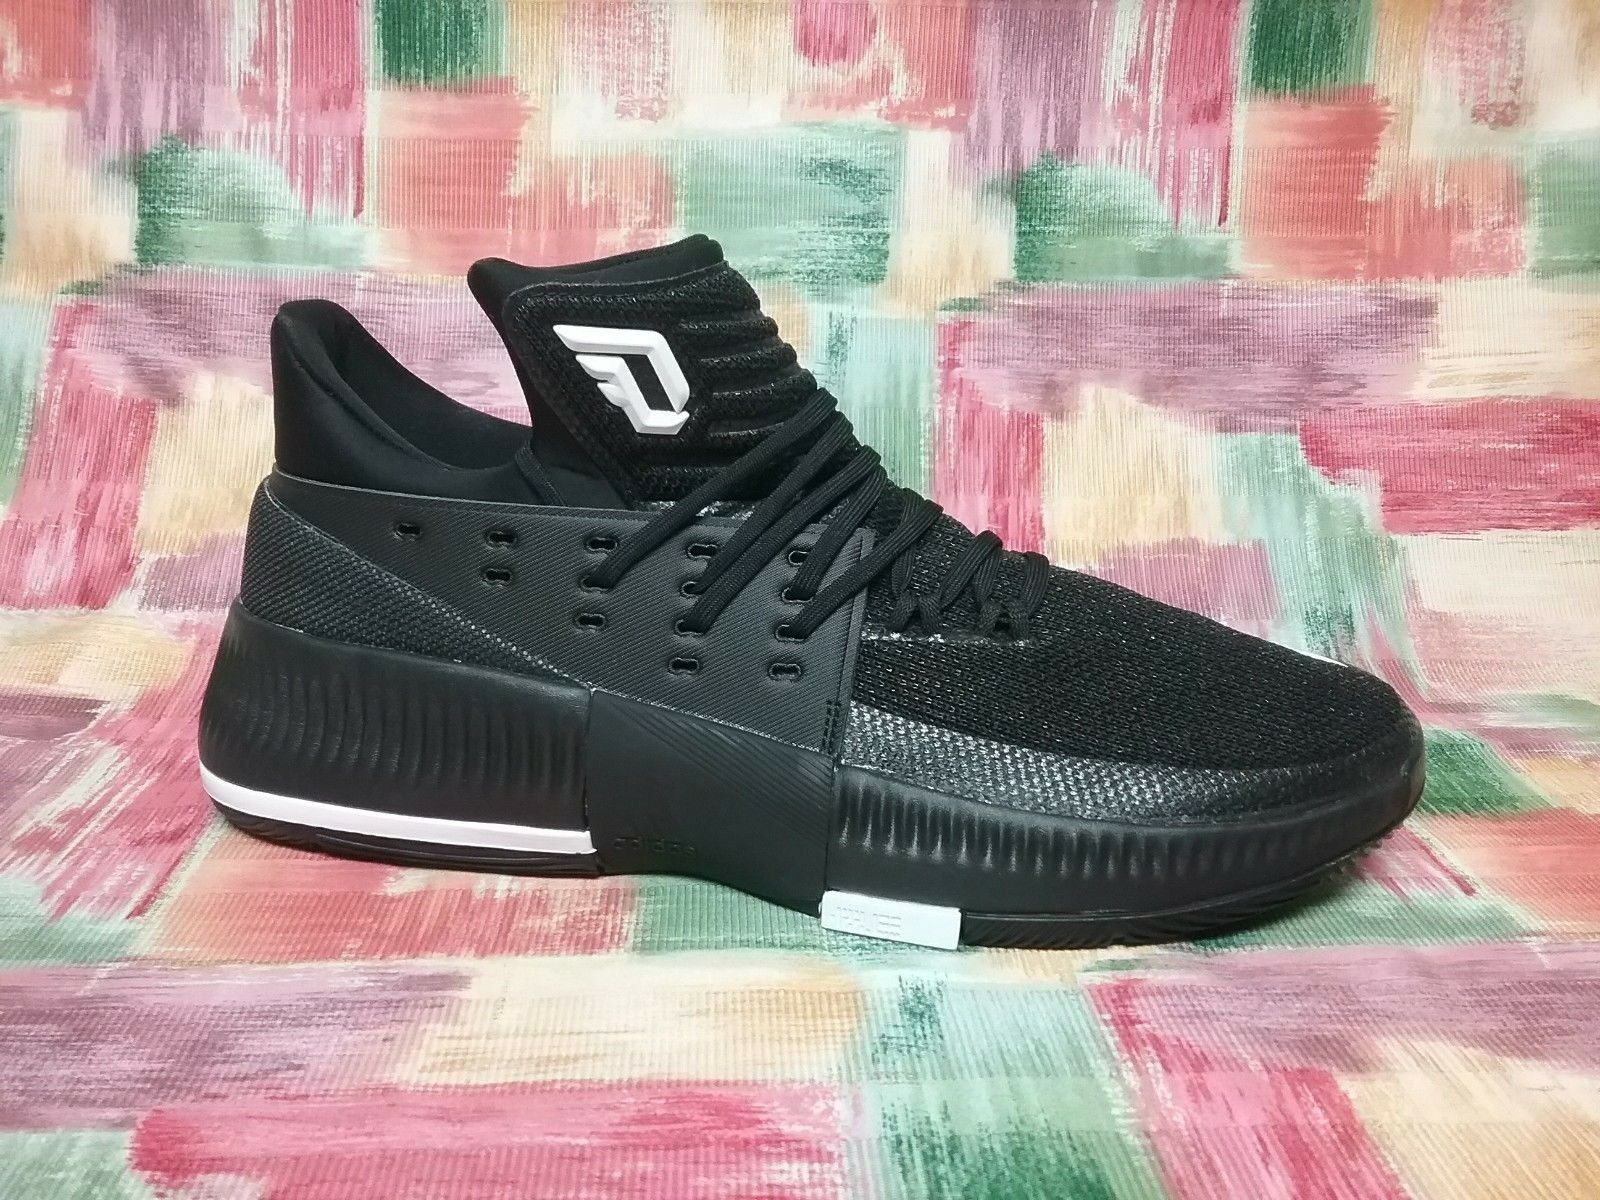 ADIDAS - CQ0277 - DAME 3 - DAMIAN LILLARD - Men's shoes -BLACK WHITE -Size 12.5